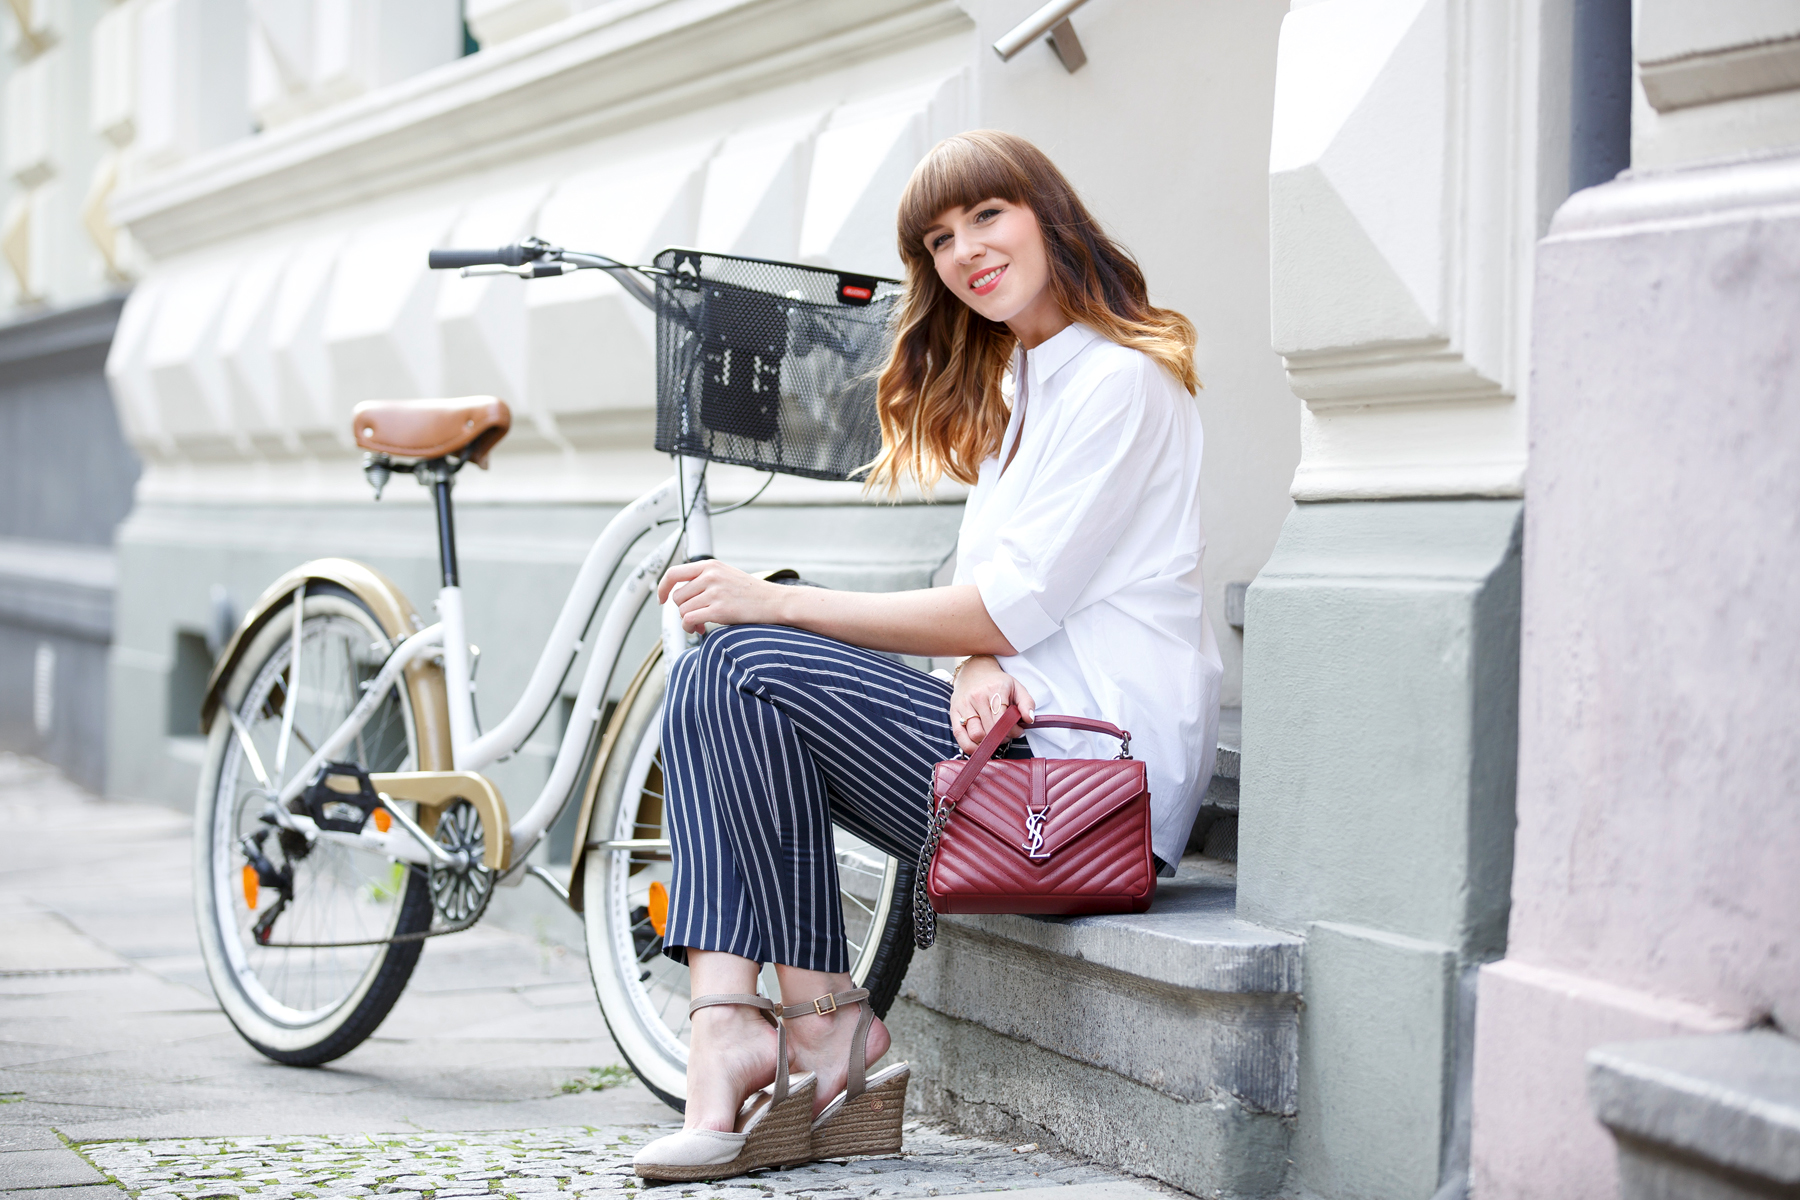 bike bicycle reserved georgia may jagger maritime ysl monogram bag red blue white outfit ootd look lookbook brunette bangs french parisienne parisian paris düsseldorf cute girly styling fashionblogger ricarda schernus cats & dogs blog 3